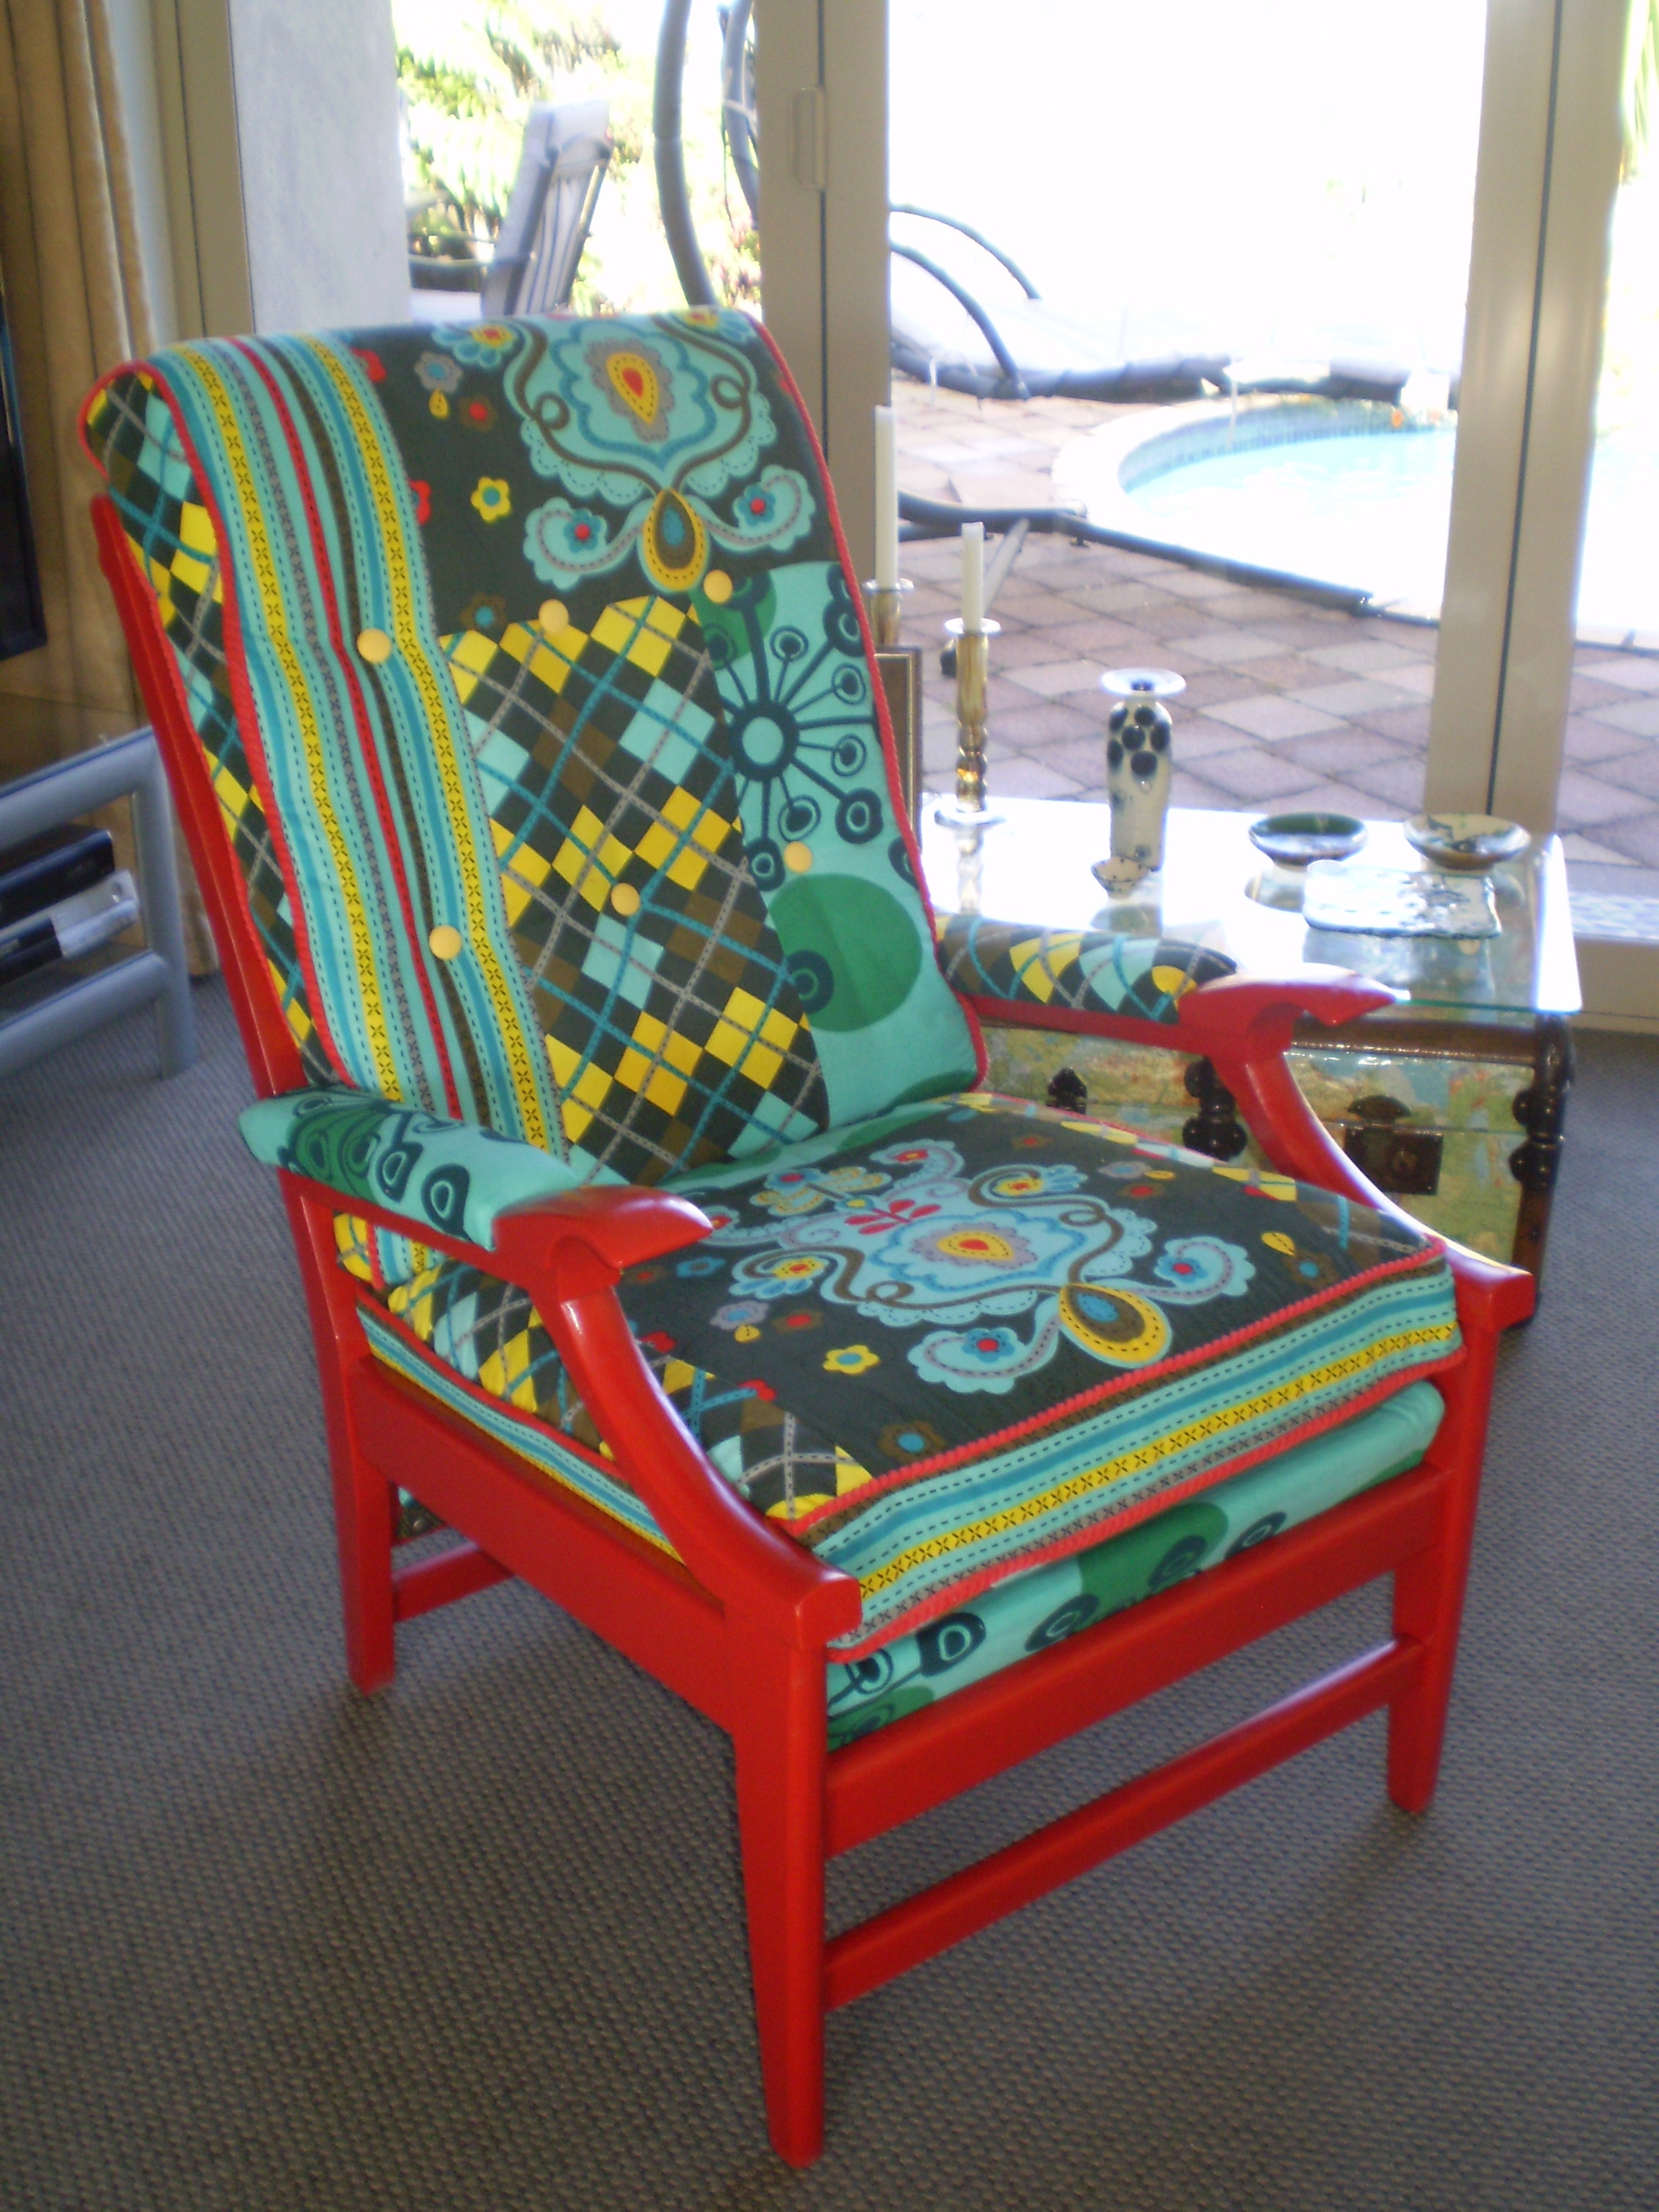 Innovative Common Cintique Chair Covers With Regard To 1960s Cintique Chair Patch Work Material And Painted Cherry Red (Image 10 of 15)